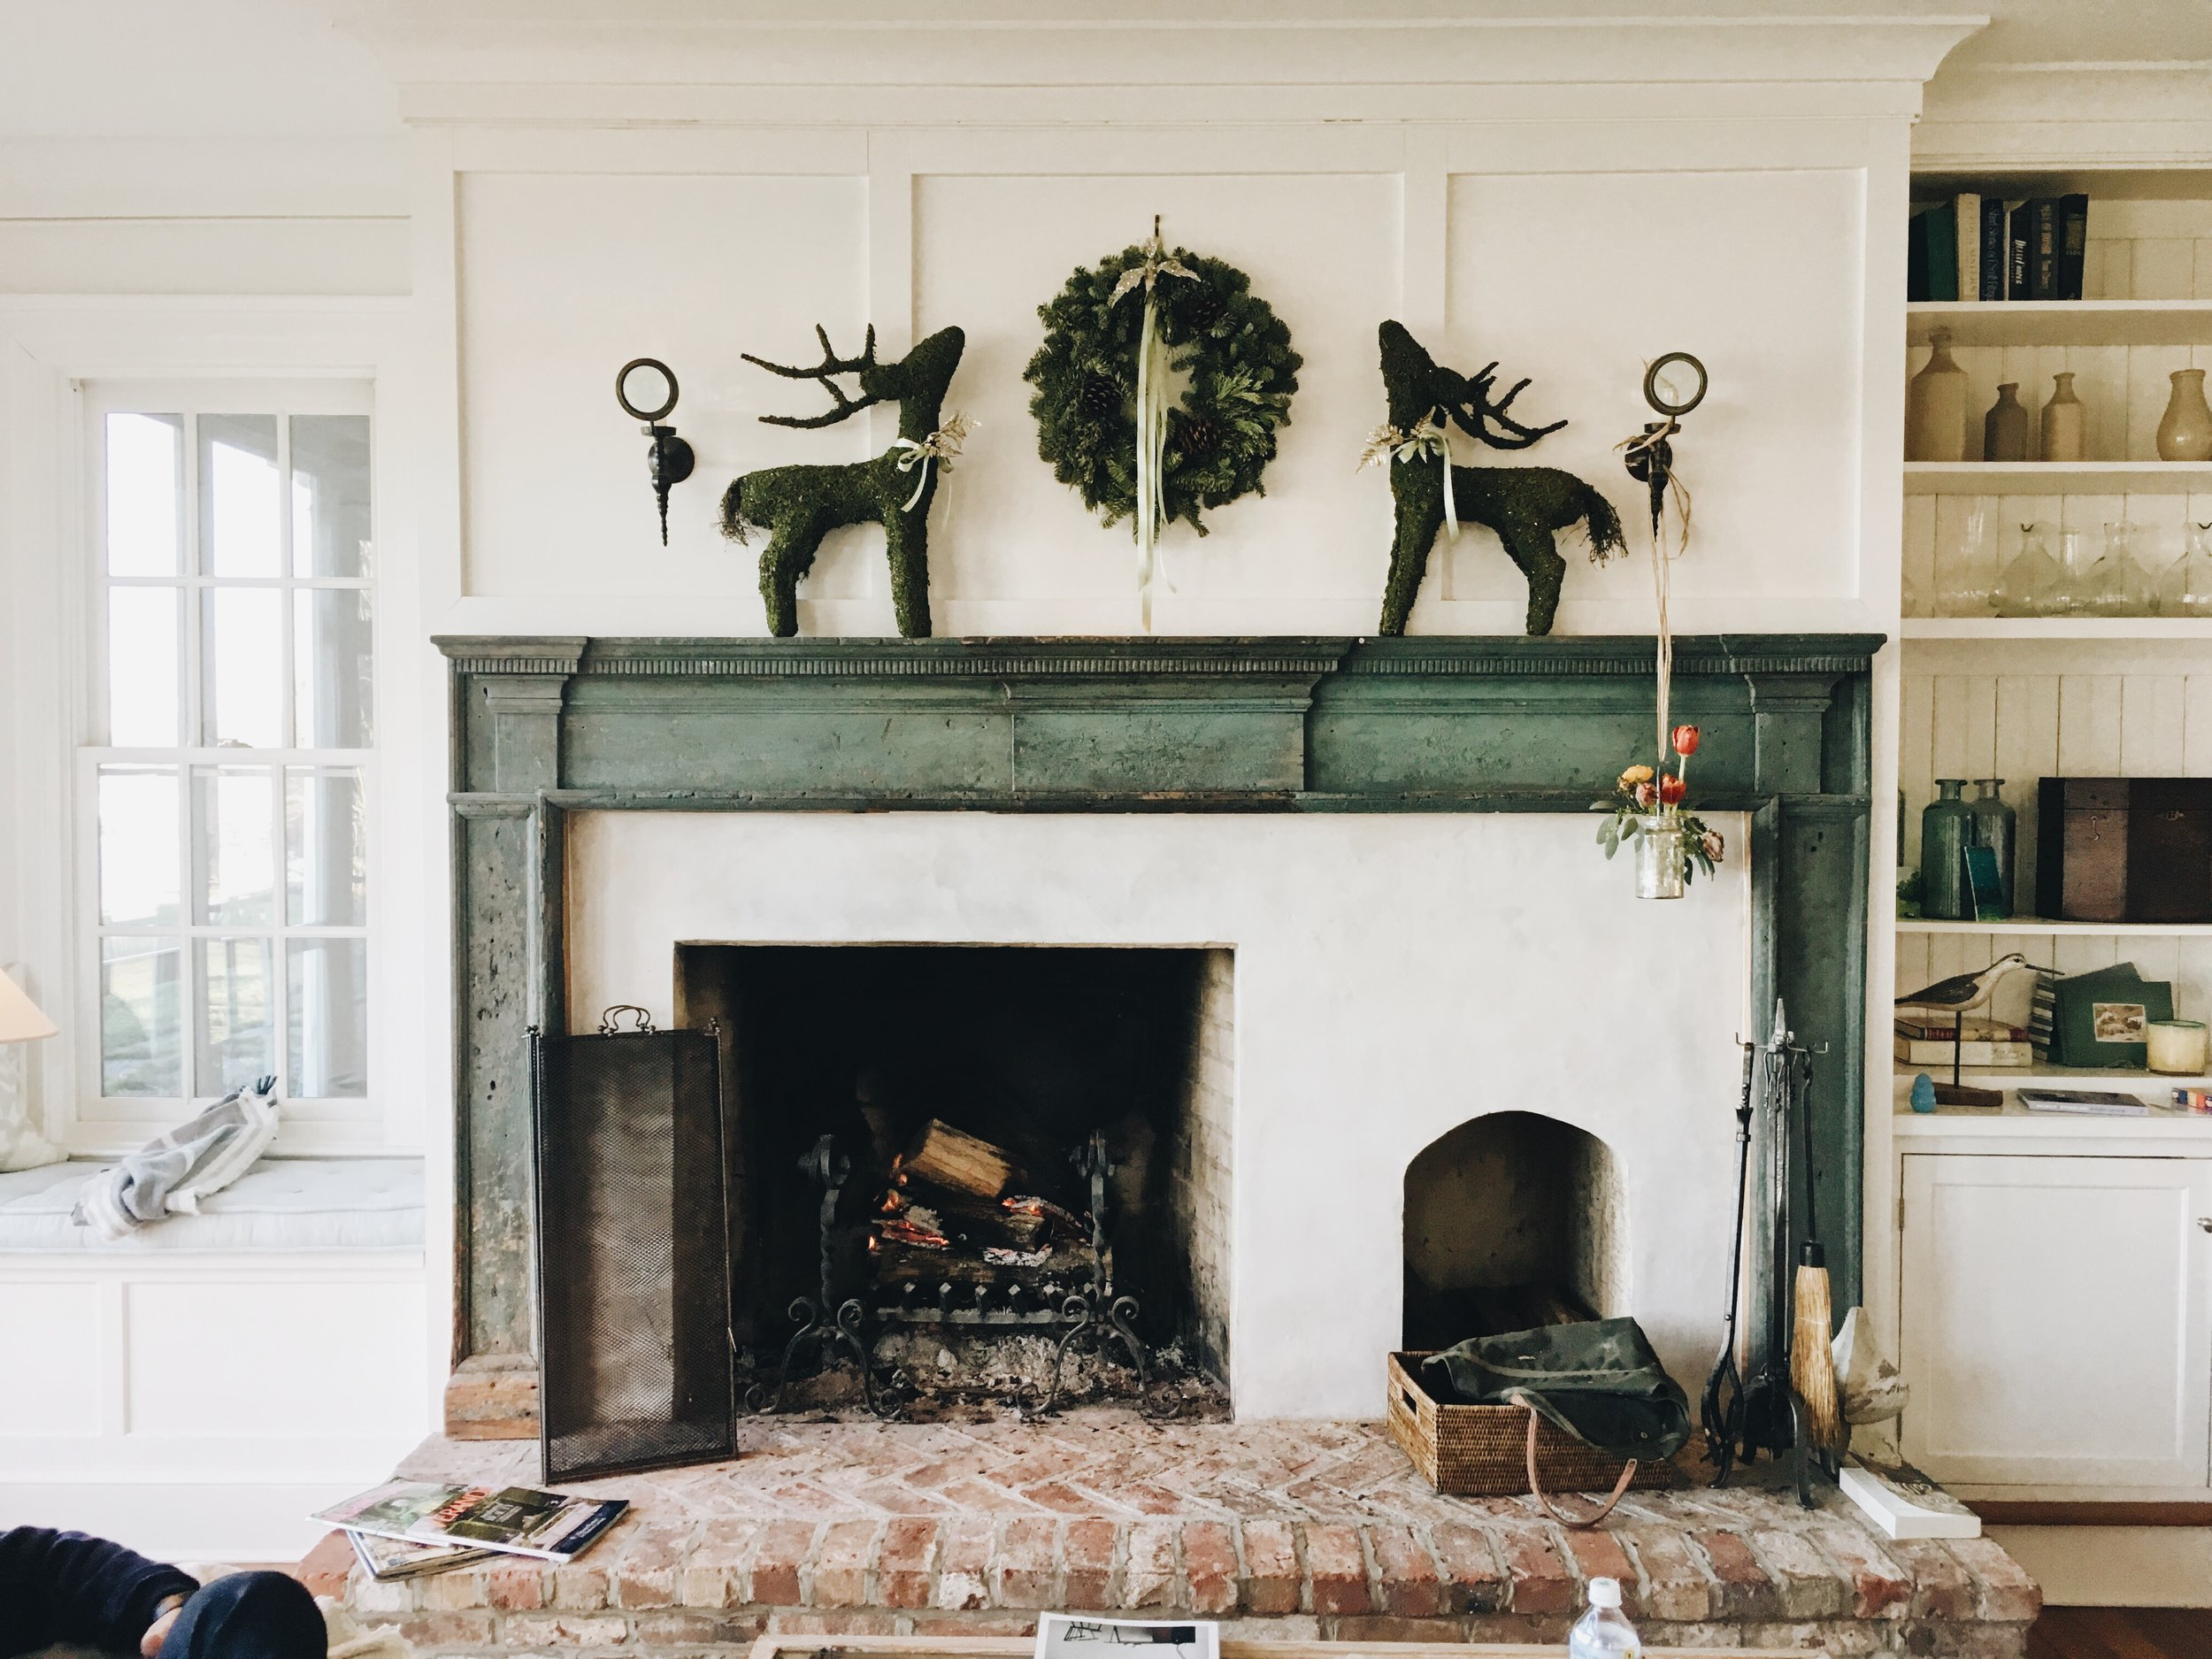 If you have a mantel, this is a cute idea for making it the focal point of the space.